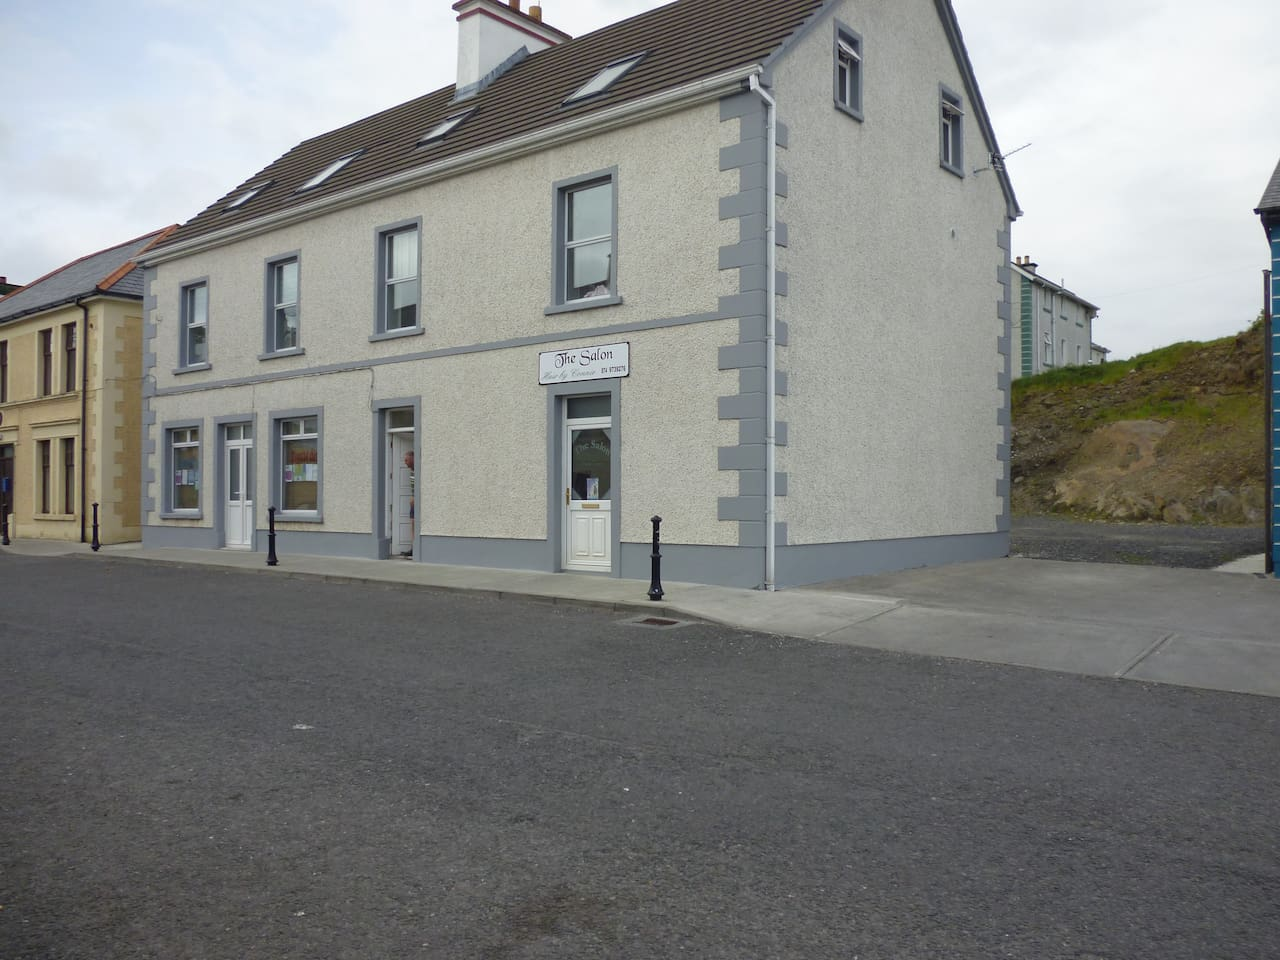 Front View, Main St, Carrick, County Donegal